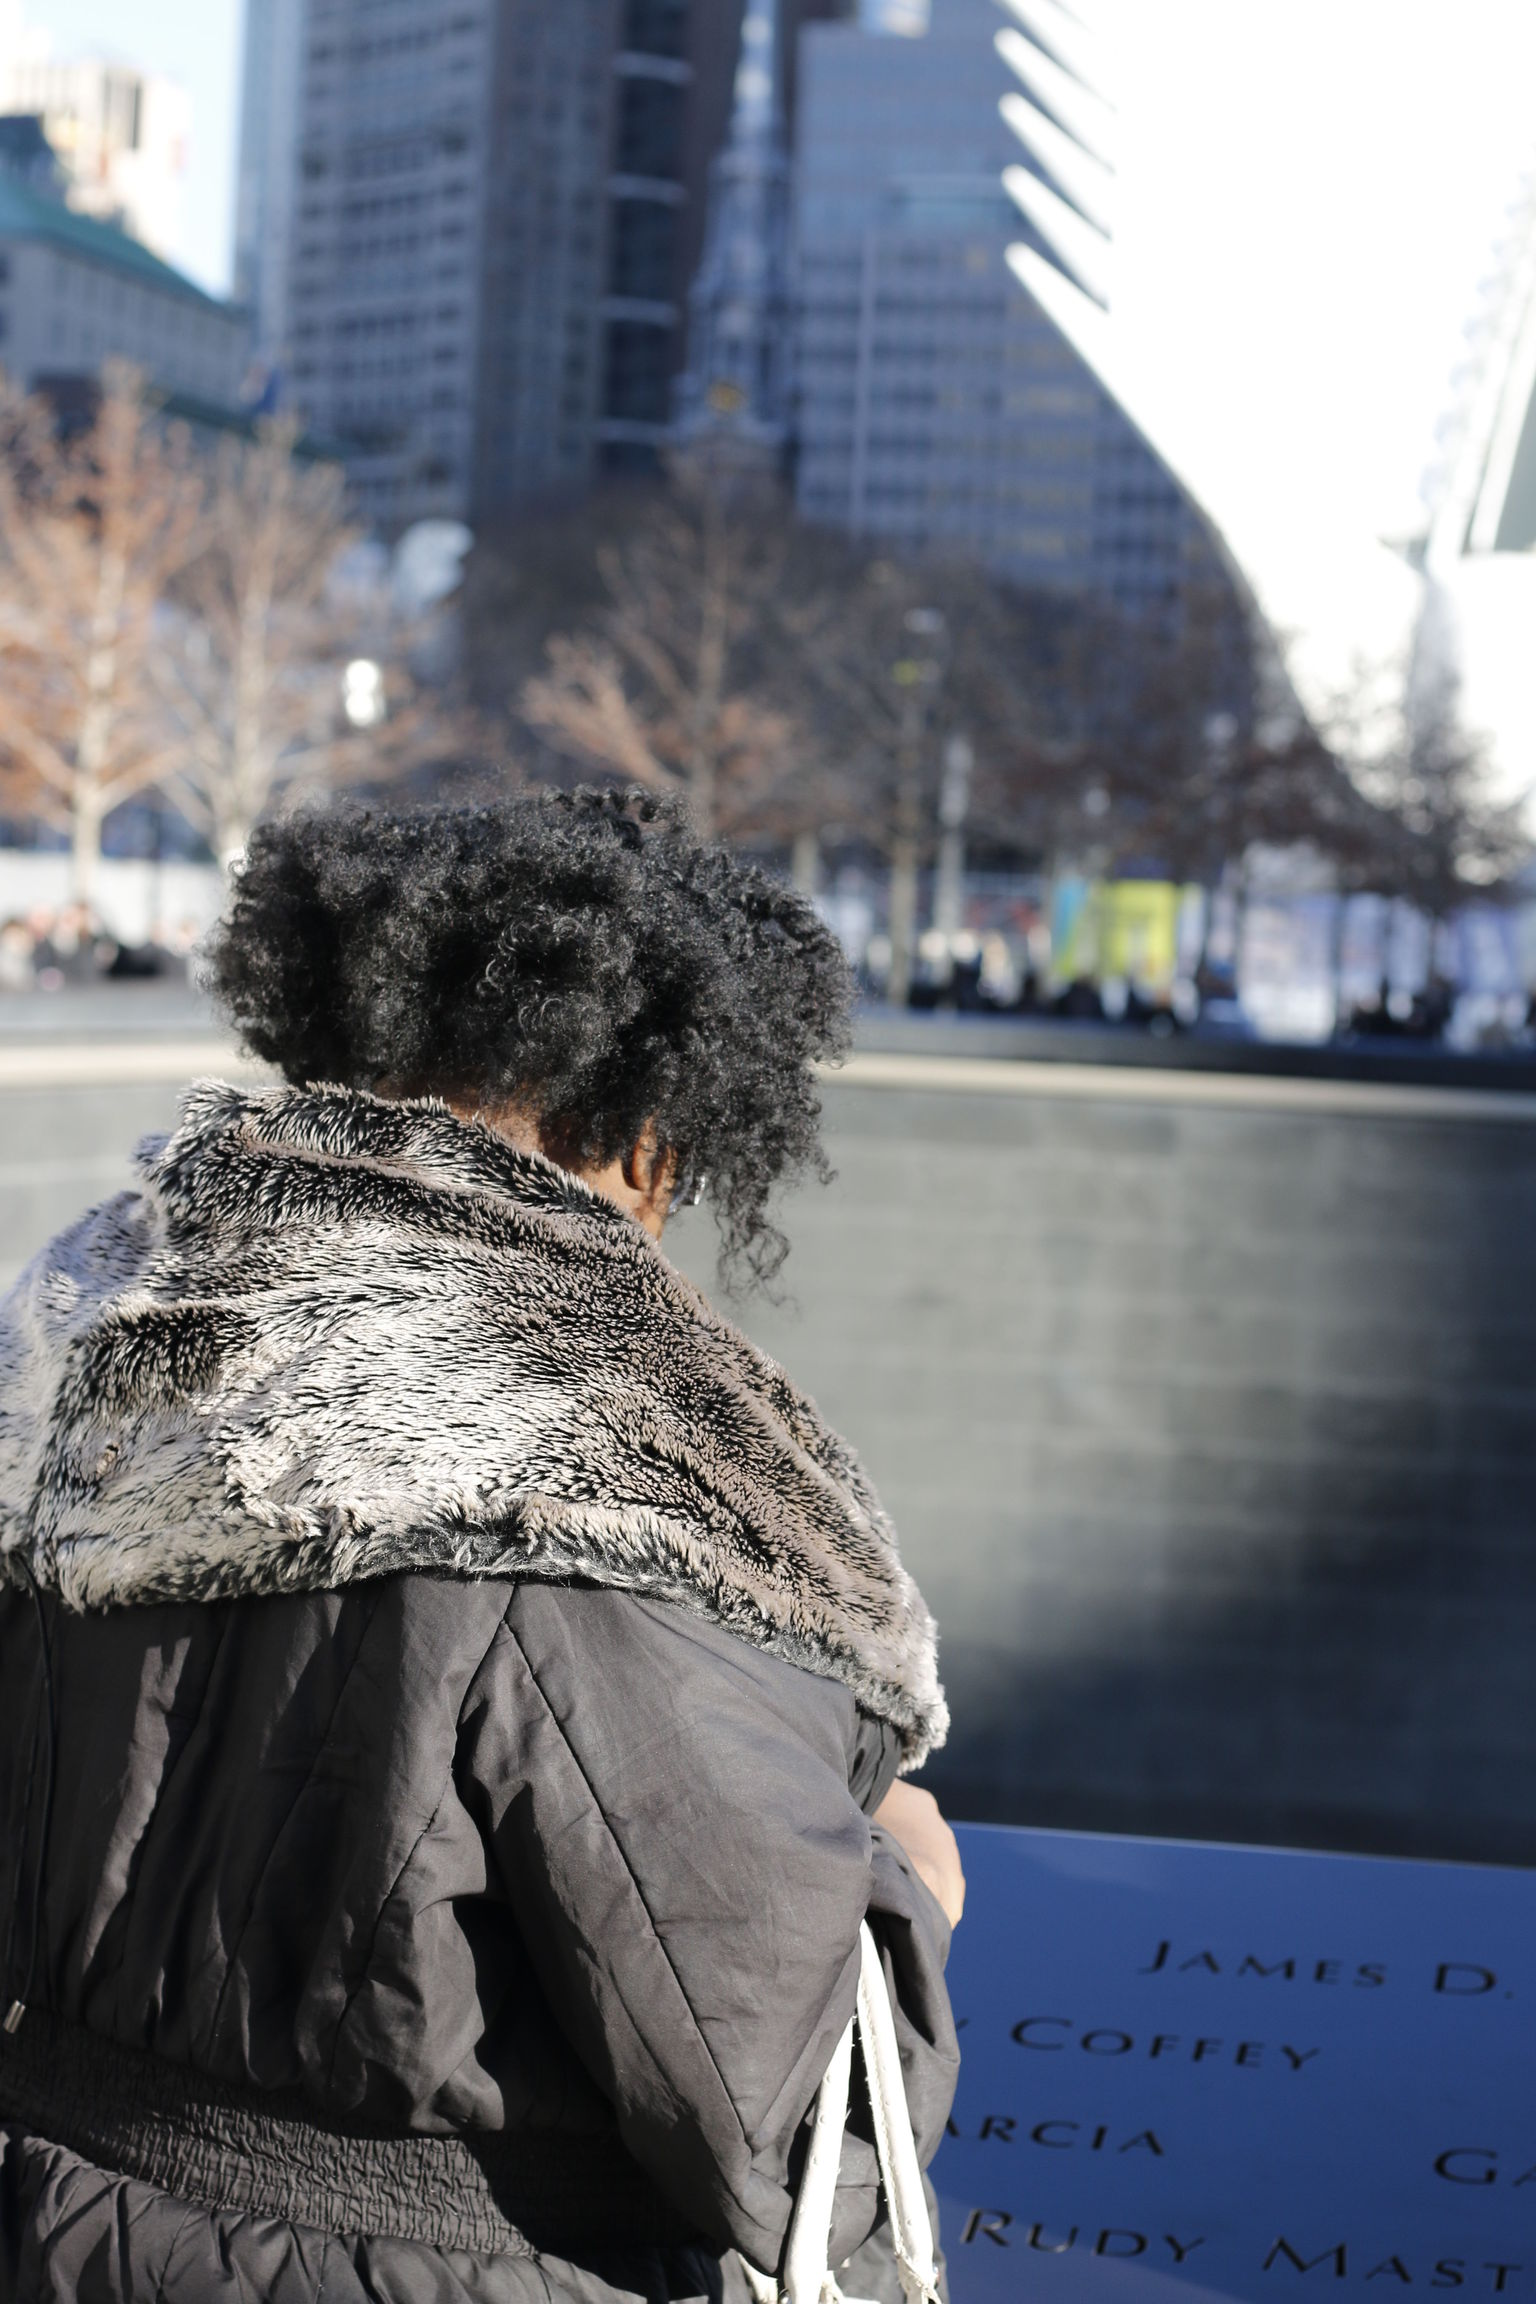 Solemn Moments at One World Trade Center